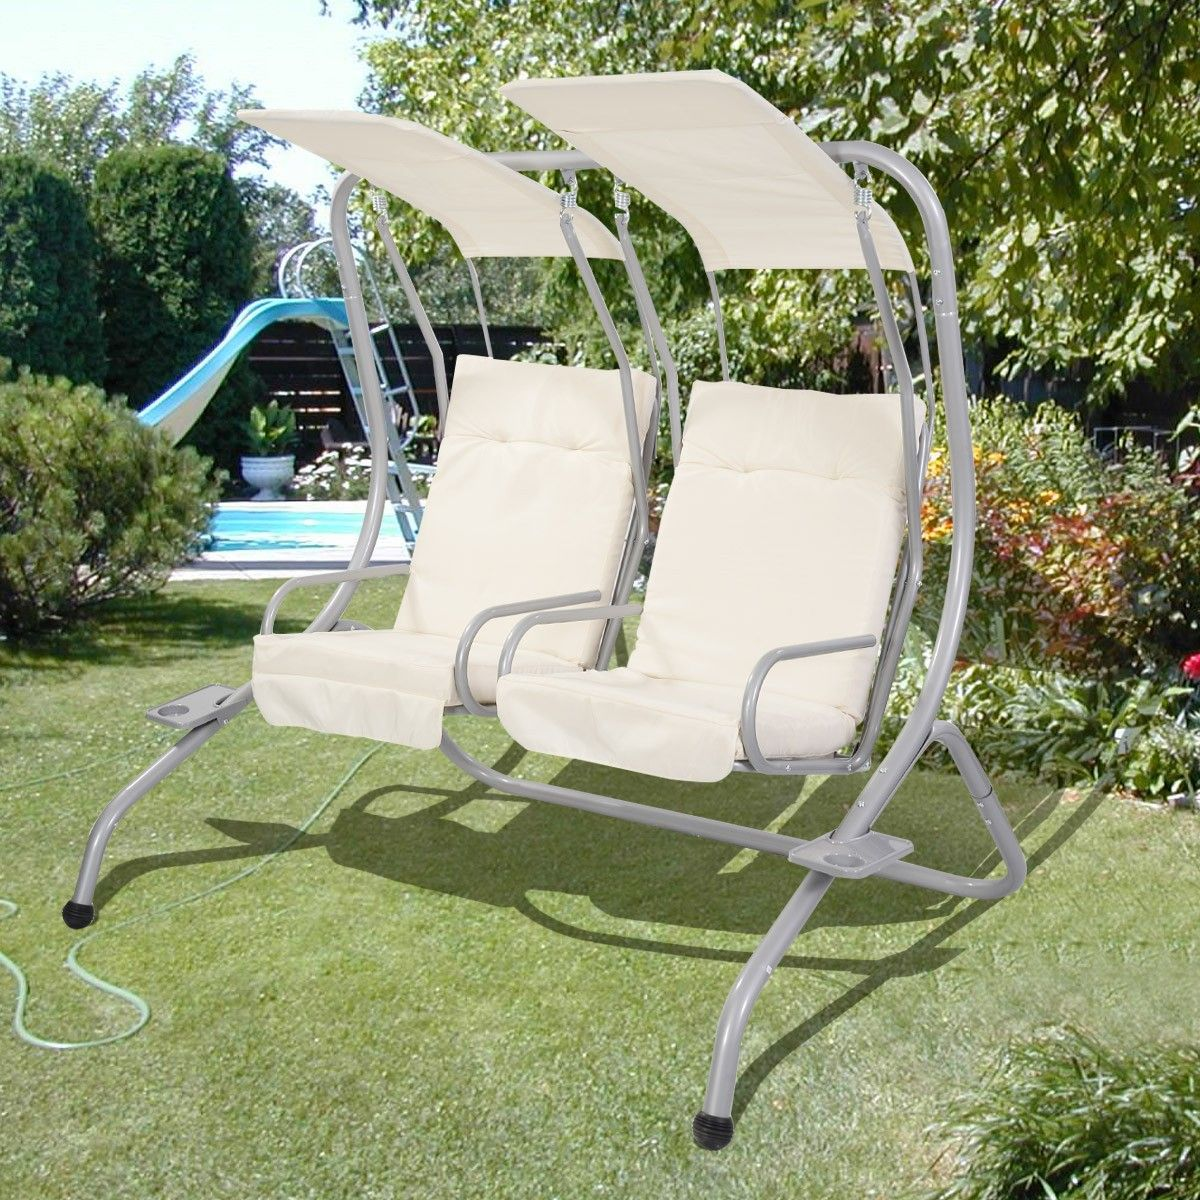 Garden Patio Seater Metal Swing Chair At £99.00